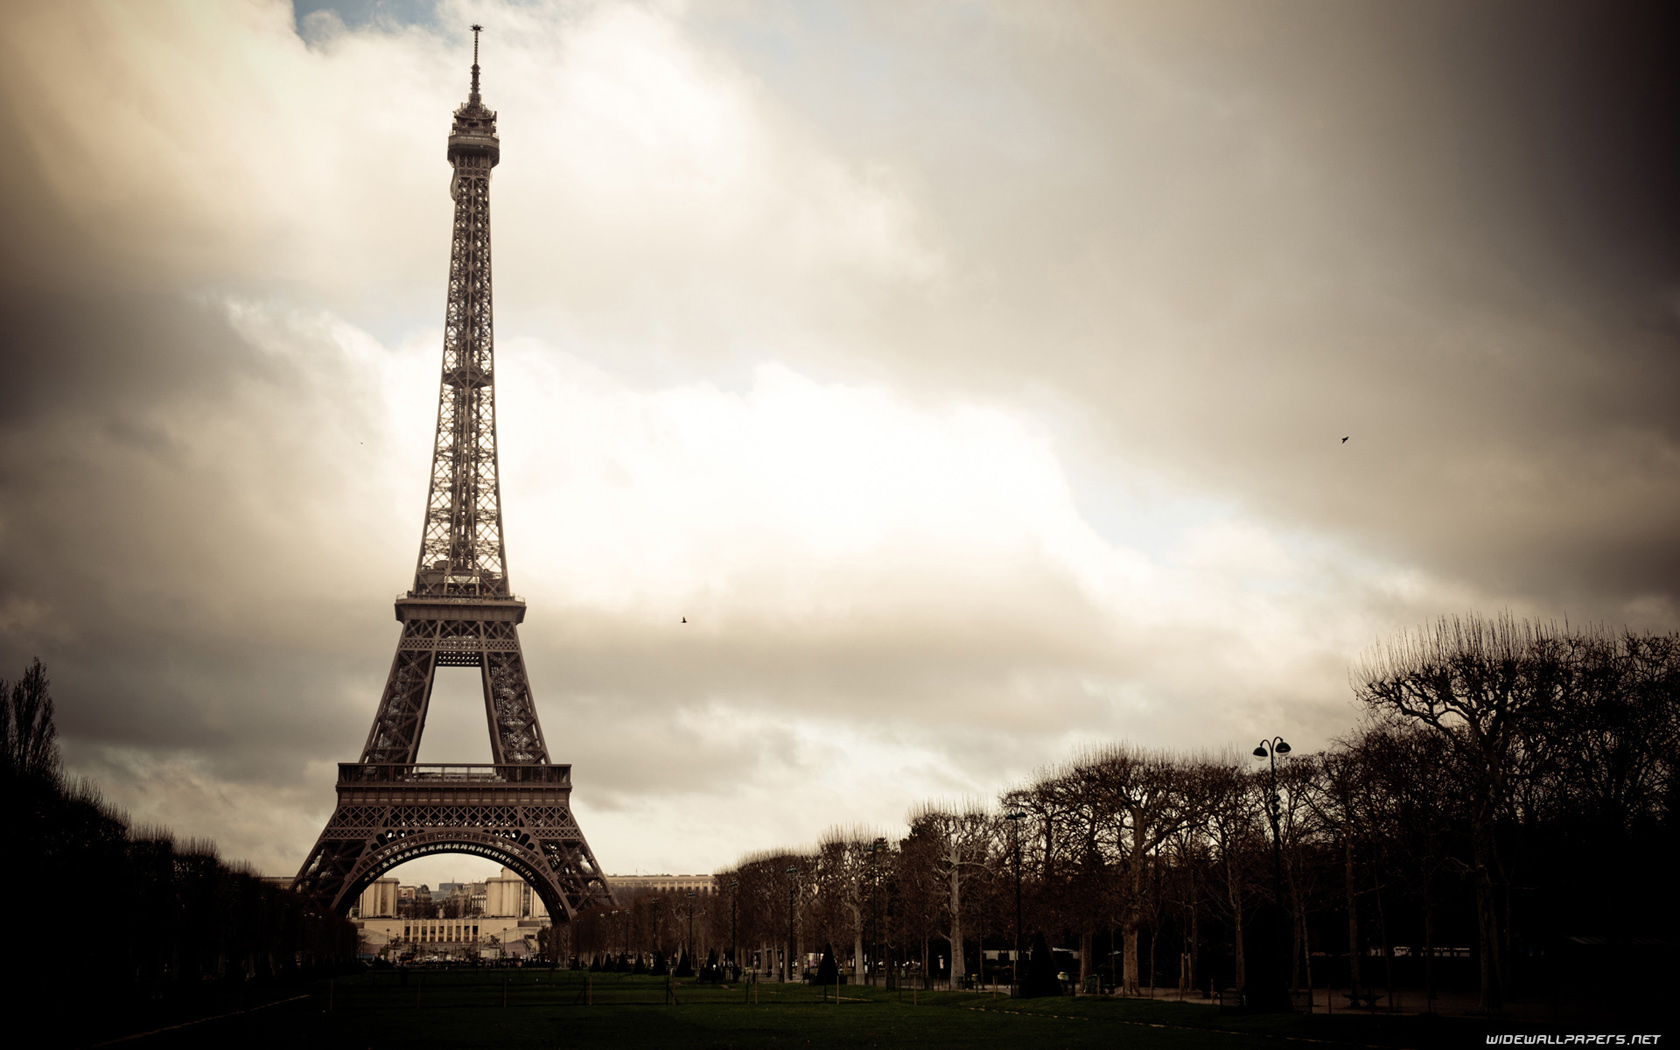 Paris desktop wallpaper hd wallpapersafari - Paris eiffel tower desktop wallpaper ...